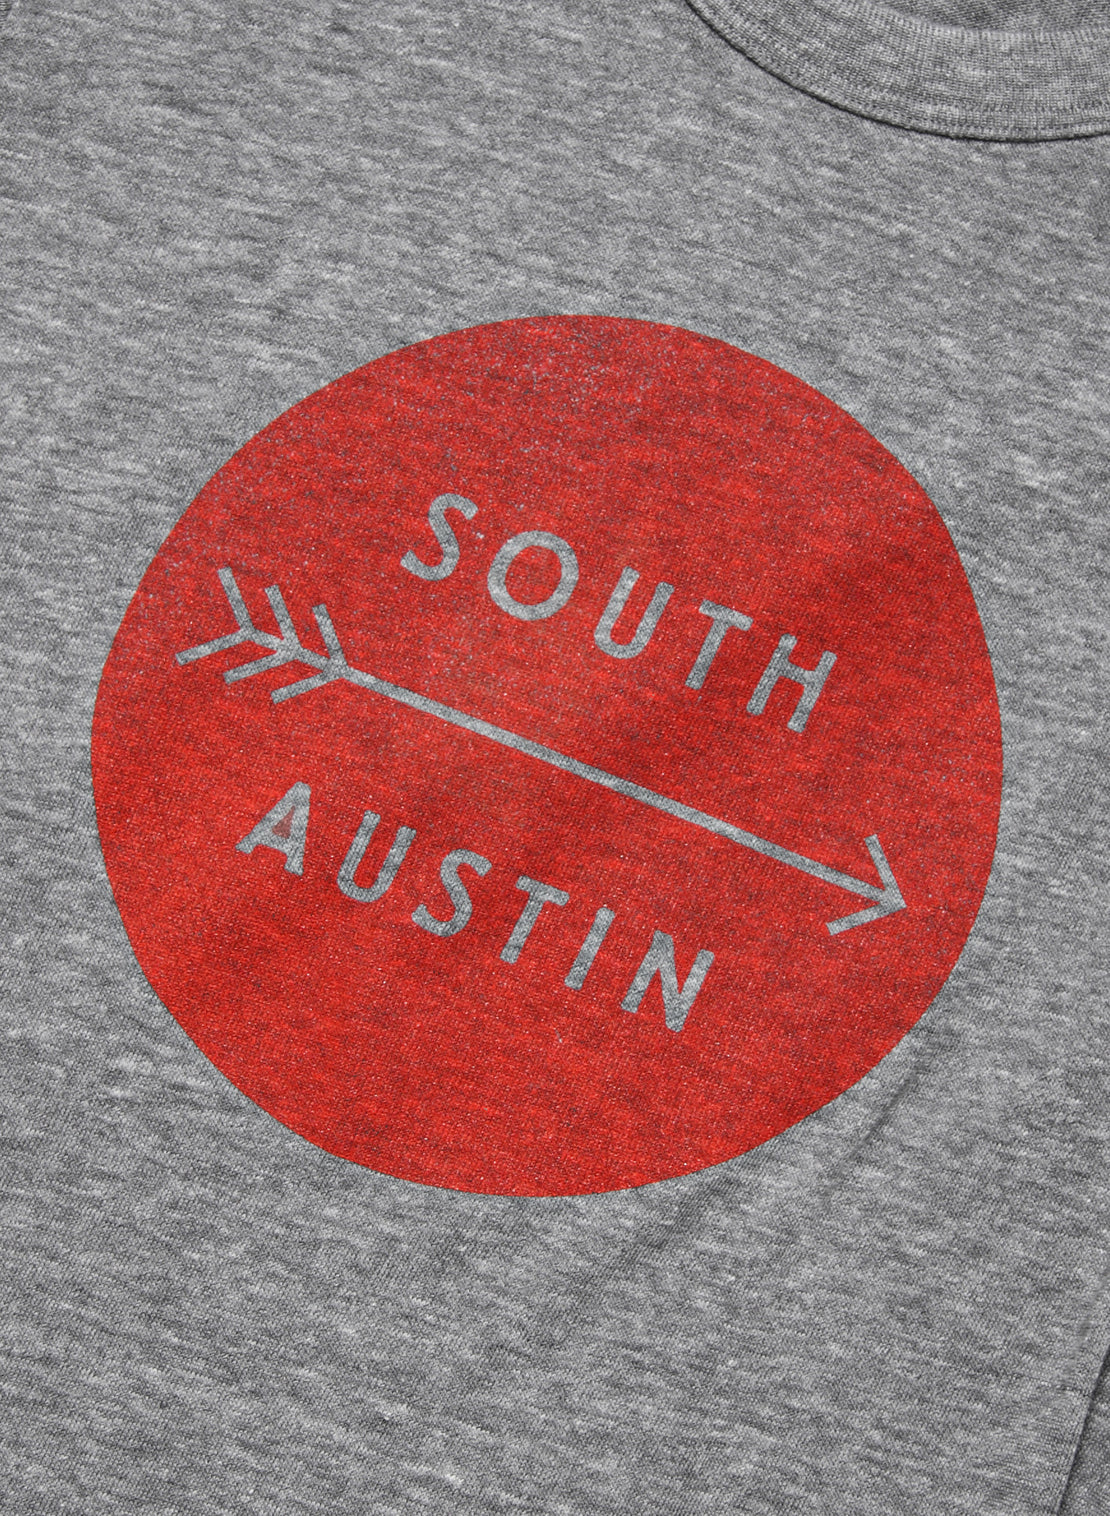 Graphic Tee - South Austin - Alchemy Design - STAG Provisions - Tops - Graphic Tee